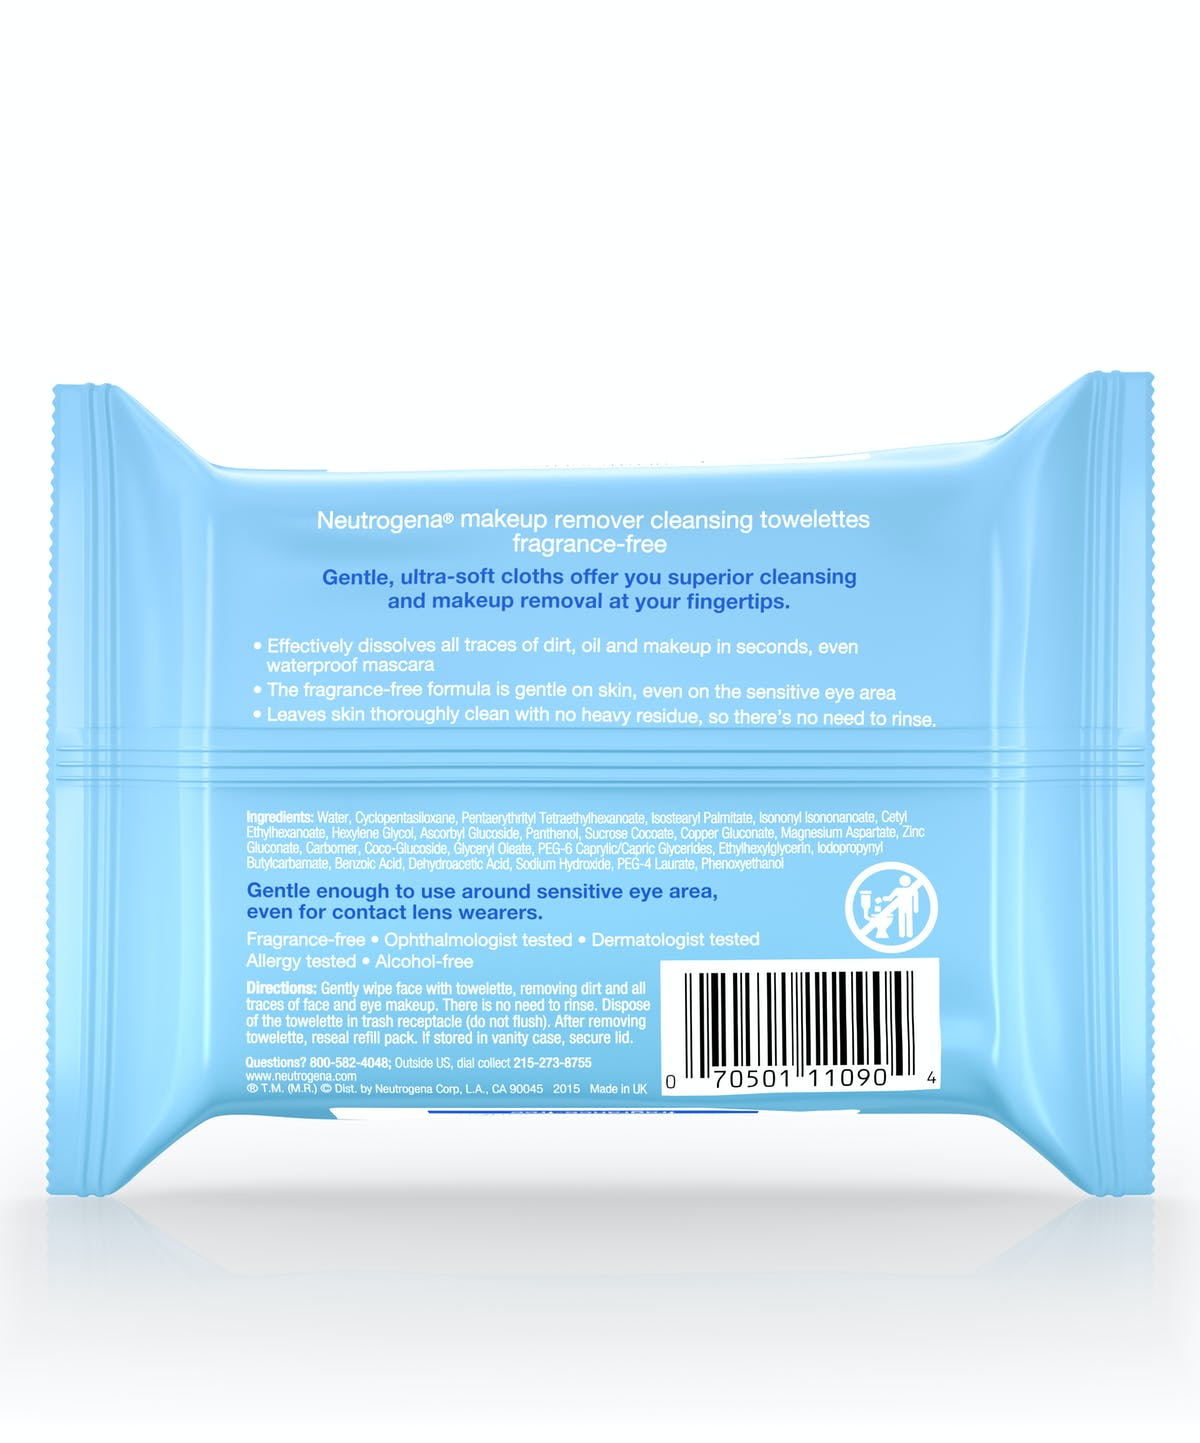 Cleansing Makeup Remover Facial Wipes Neutrogena